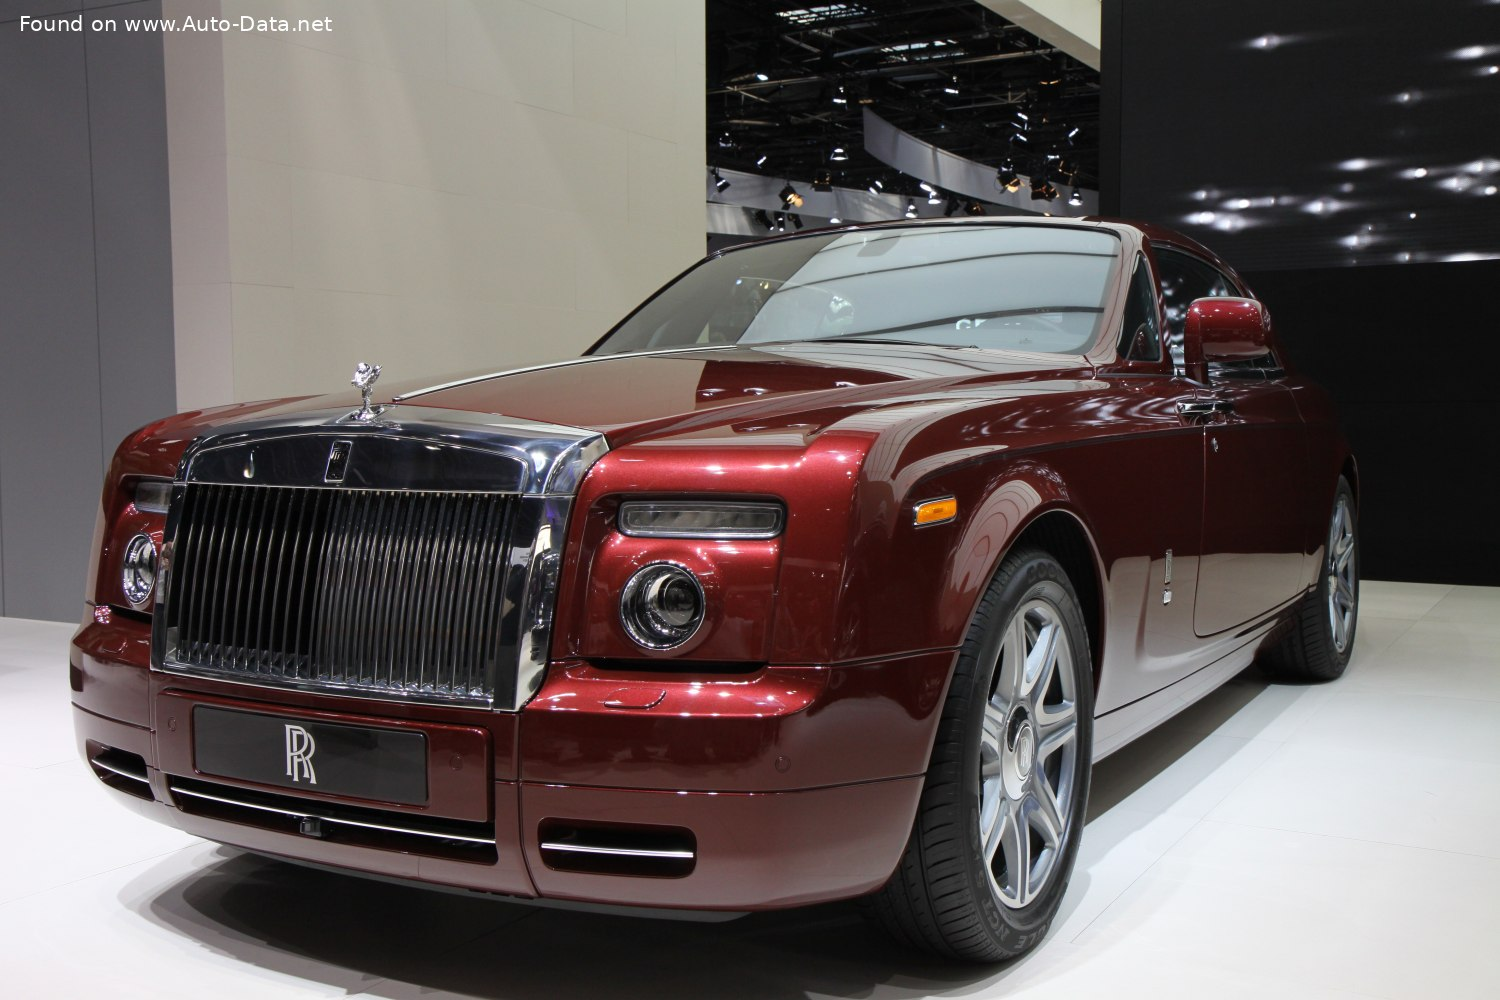 2008 Rolls Royce Phantom Coupe 6 75 I V12 460 Hp Automatic Technical Specs Data Fuel Consumption Dimensions